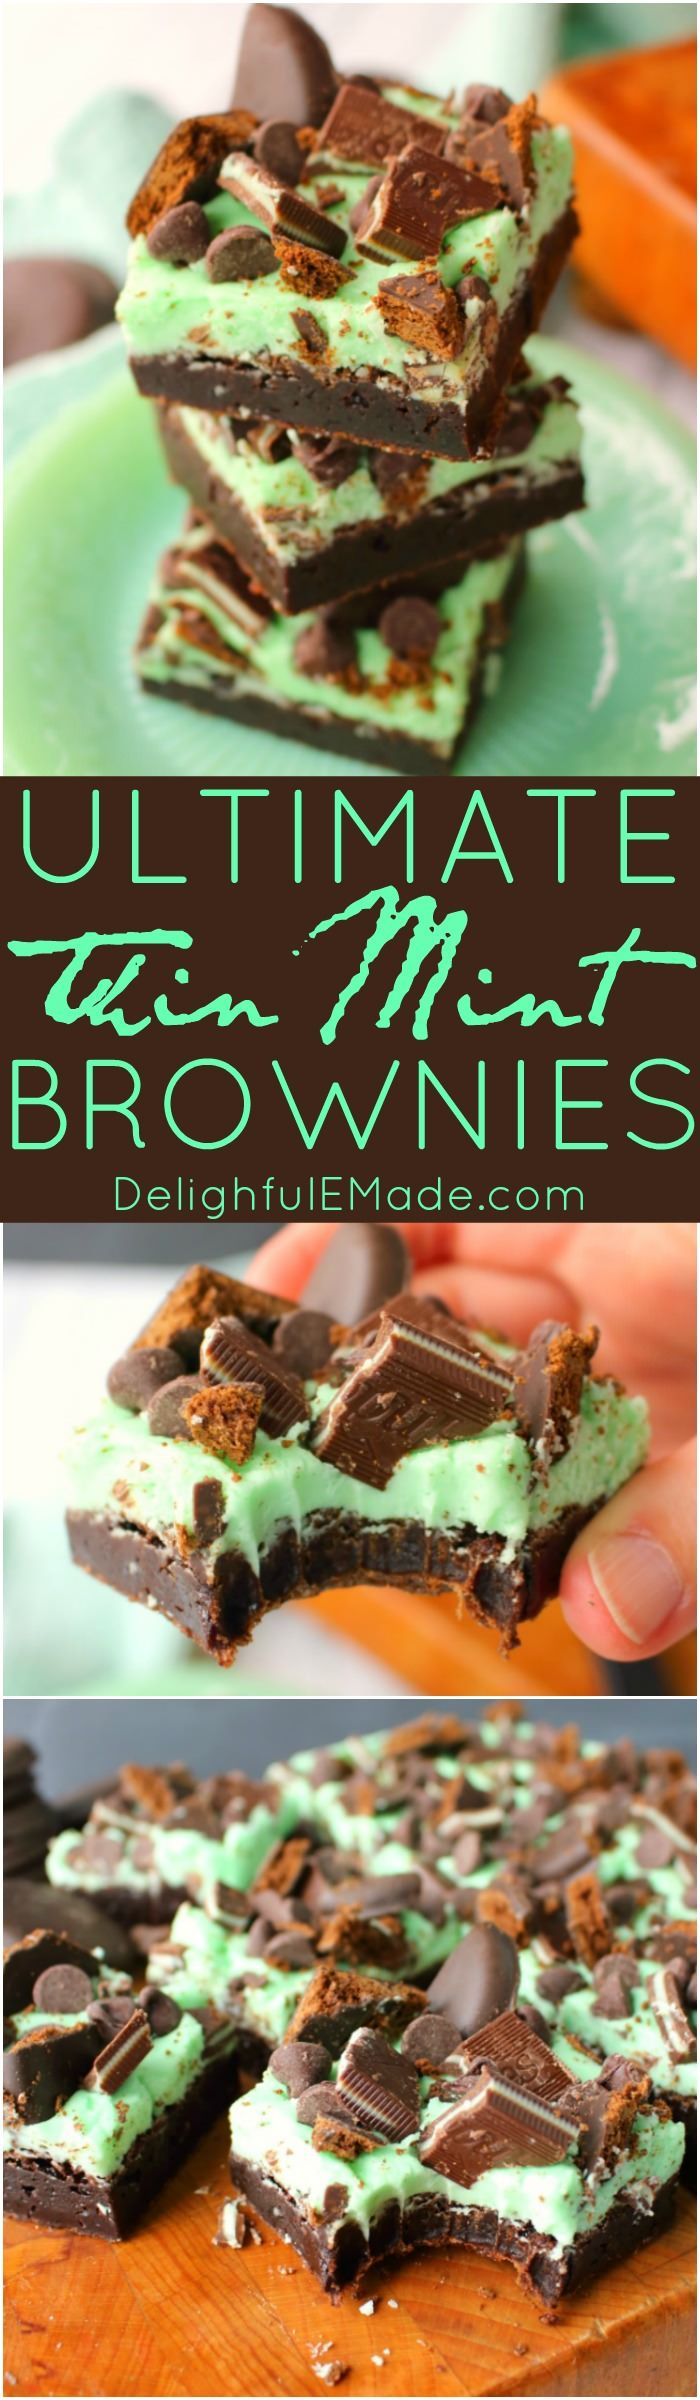 Let me introduce you to your new favorite brownie recipe!  A perfect combination of chocolate and mint, these fudgy mint brownies are topped with Girl Scout Thin Mint Cookies, Andes mints, chocolate chips, and an amazing layer of mint butter cream frosting.  Most definitely a brownie lover's dream come true!: